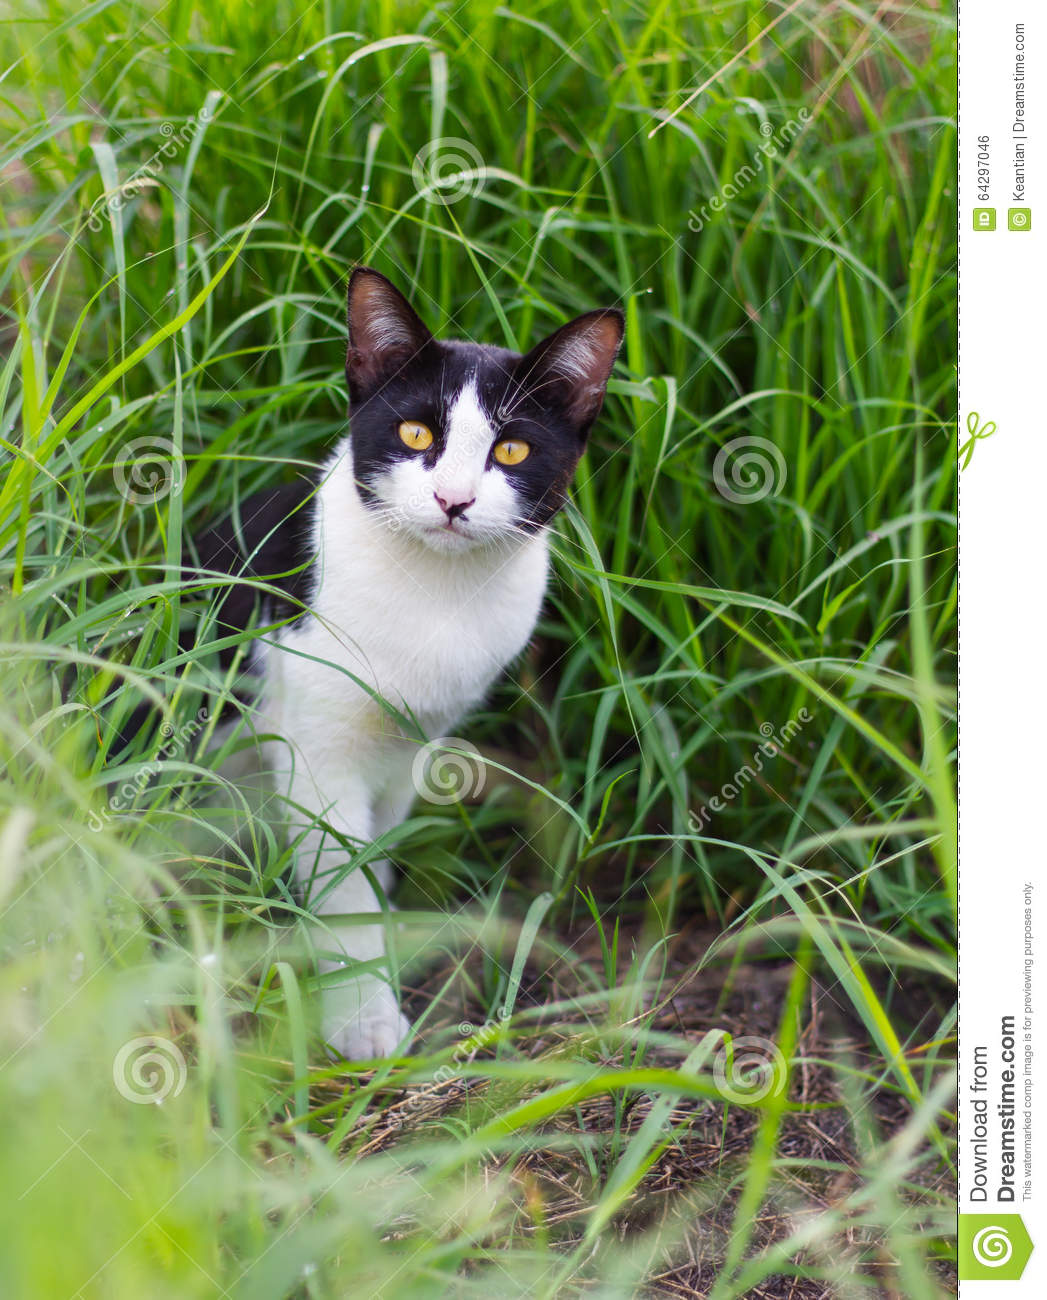 Black And White Cat In The Grass. Stock Photo - Image of meadow ...